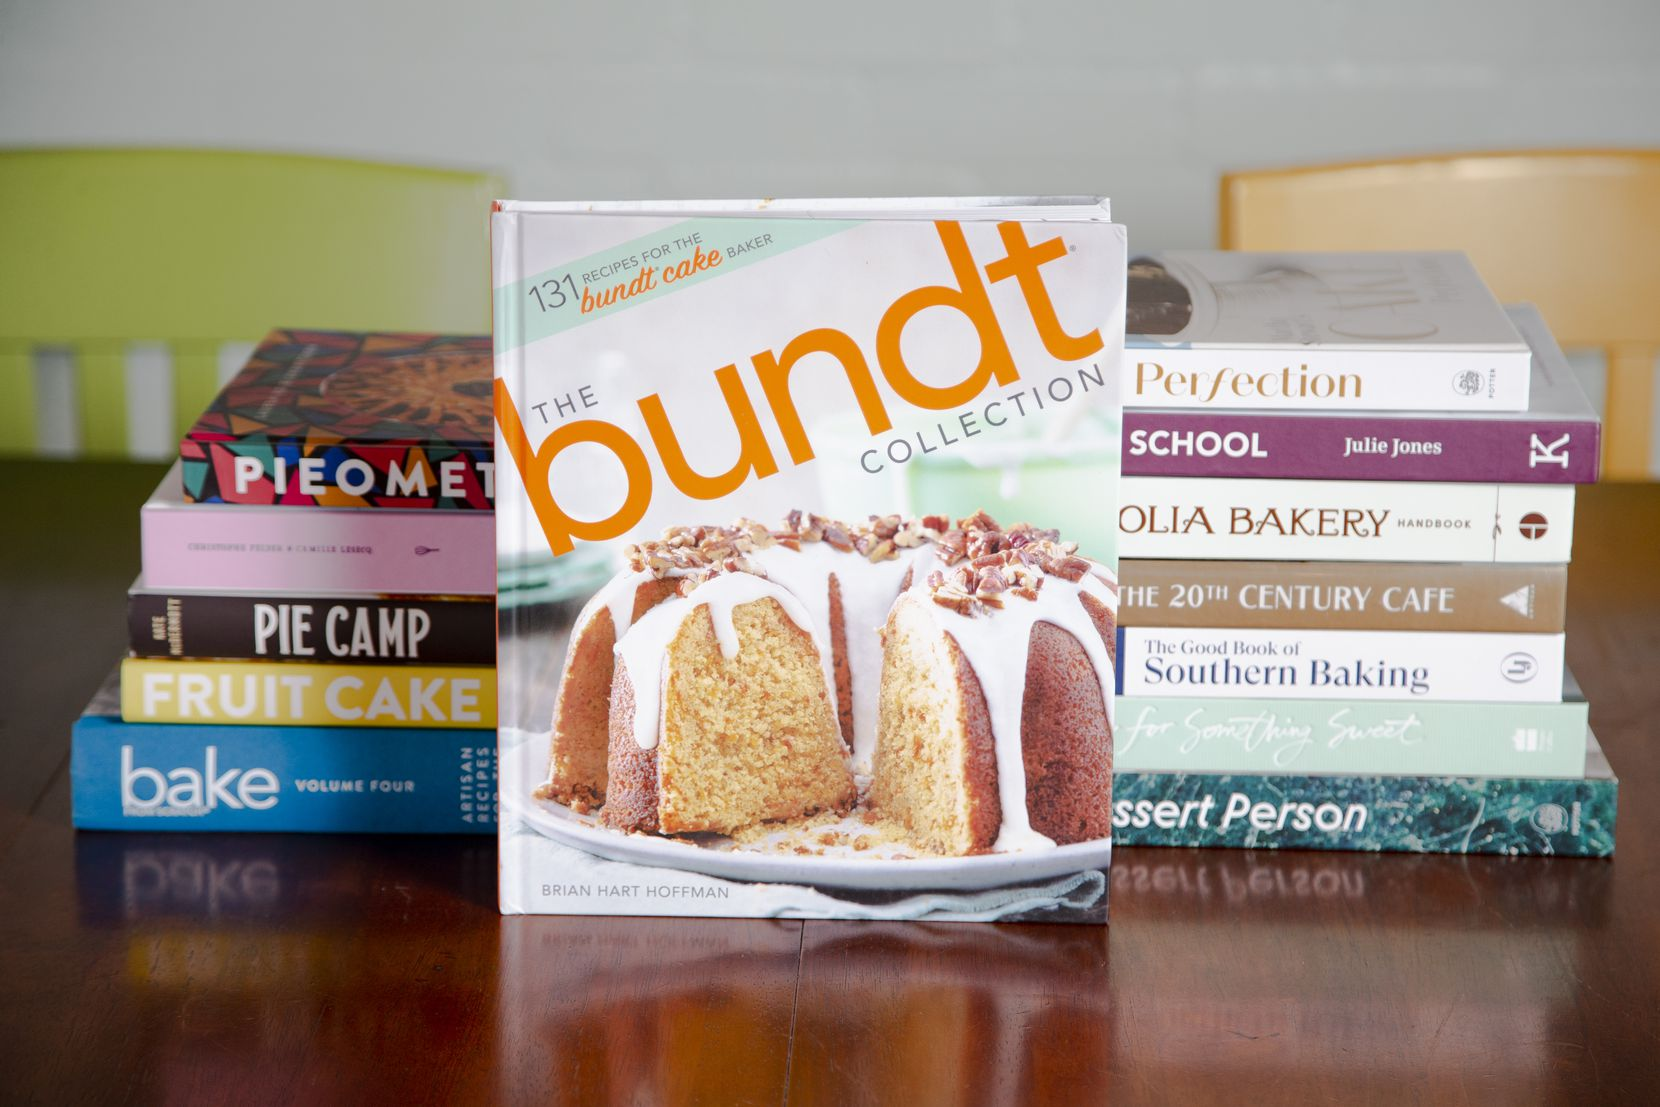 The bundt Collection